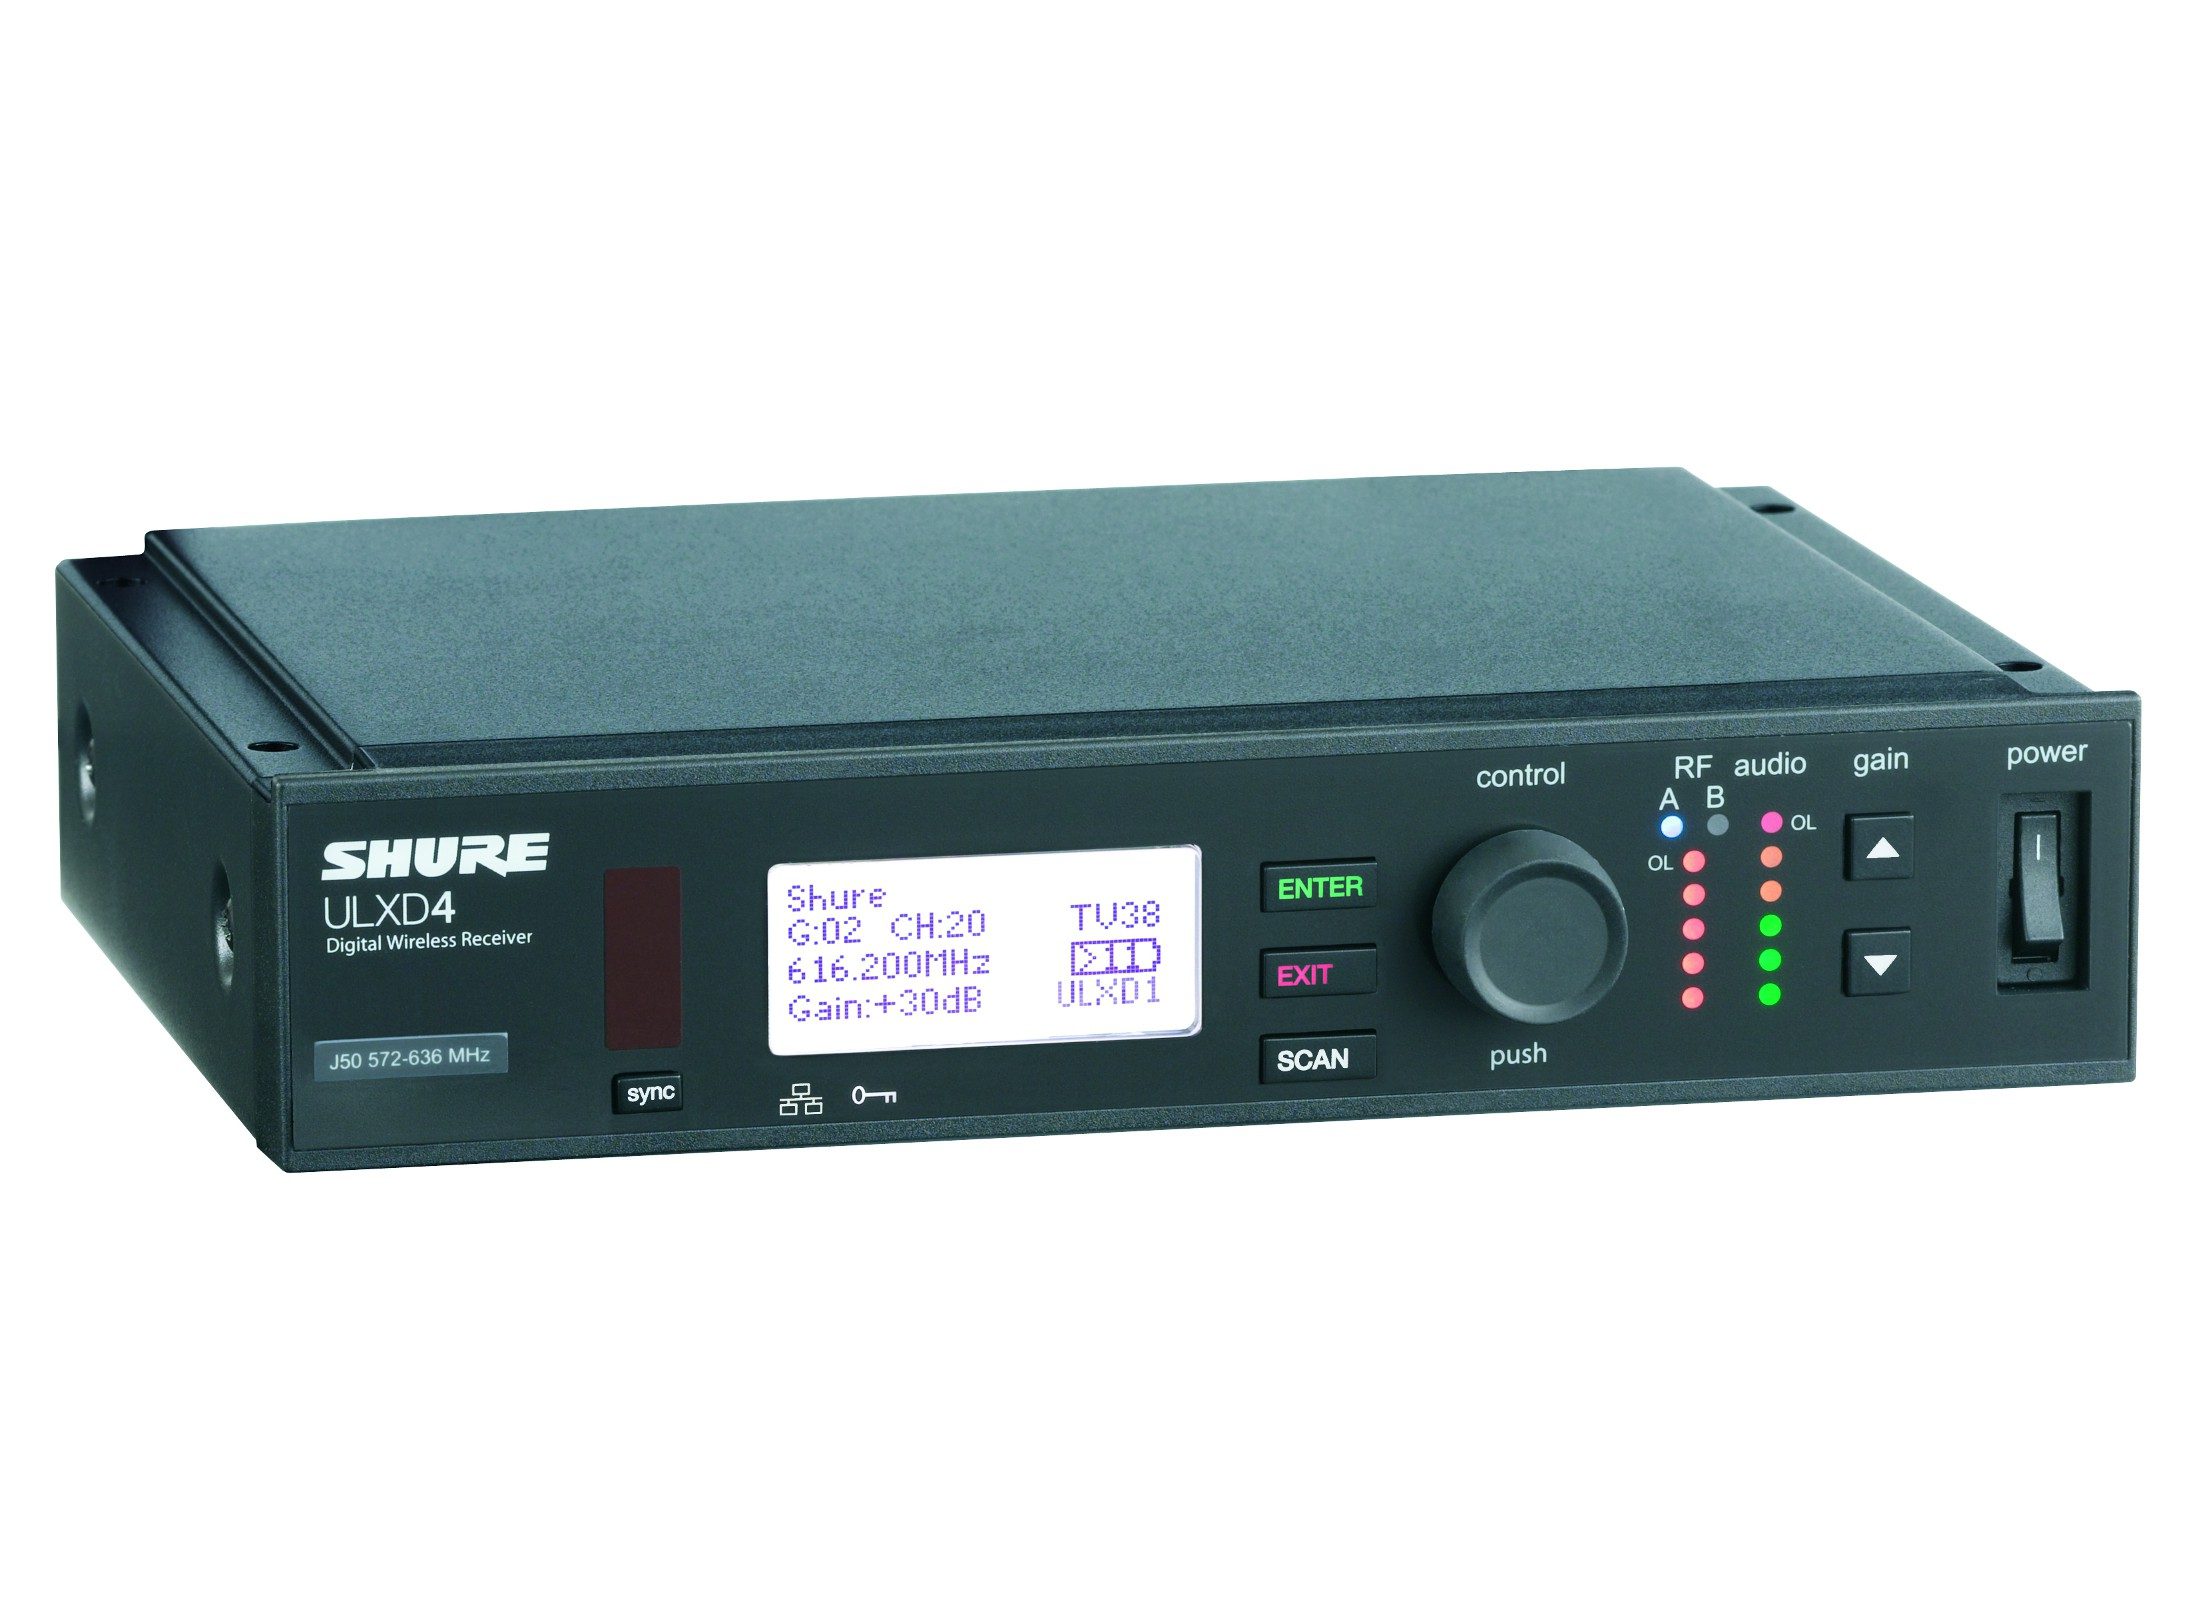 Shure ULXD4E-P51 Receiver Online At Low Prices At Huss Light & Sound